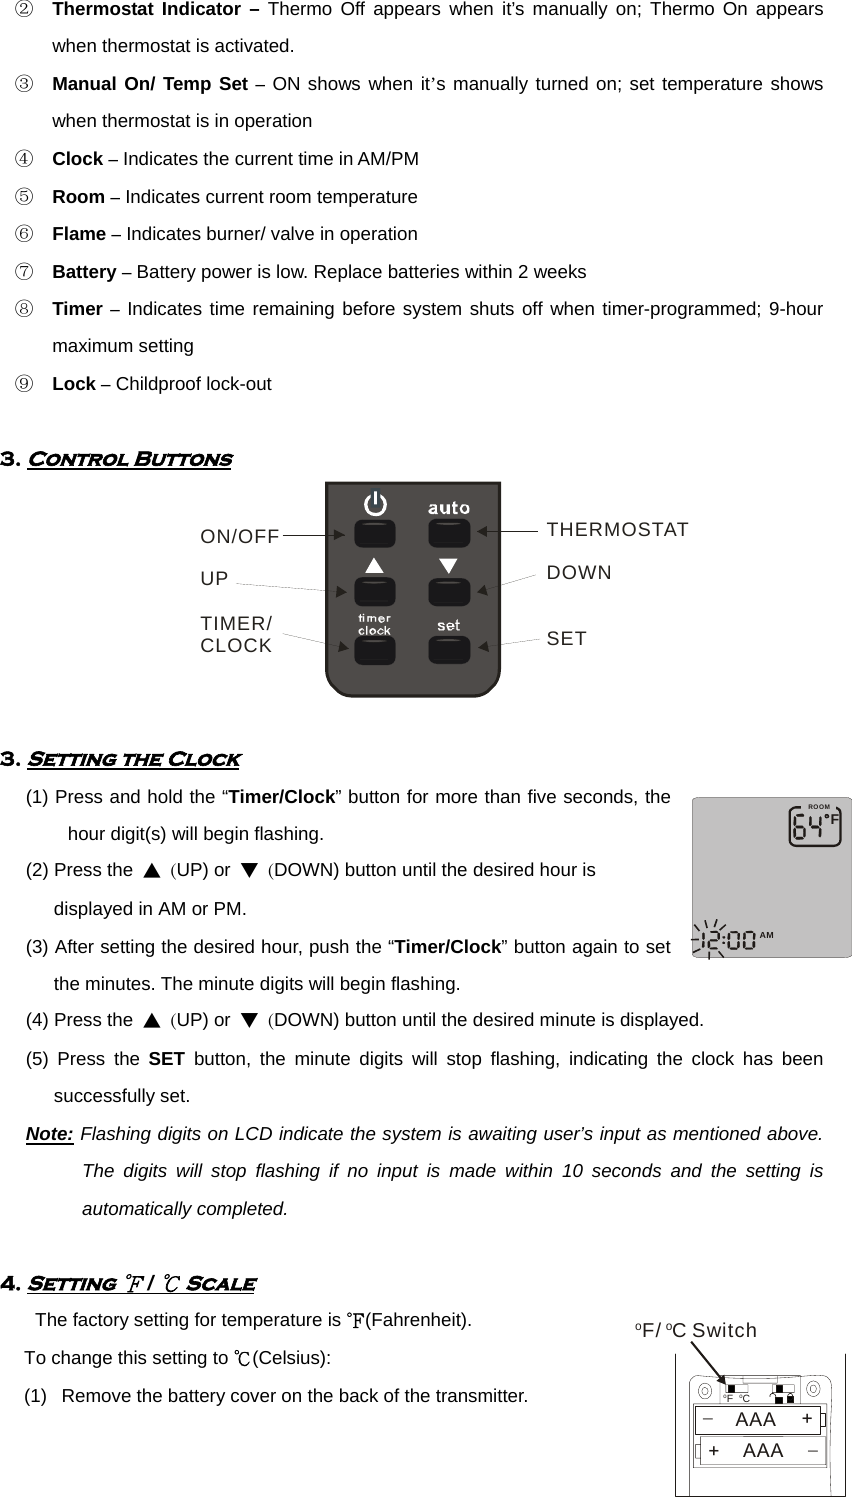 remote 4 room off 13413 instructions